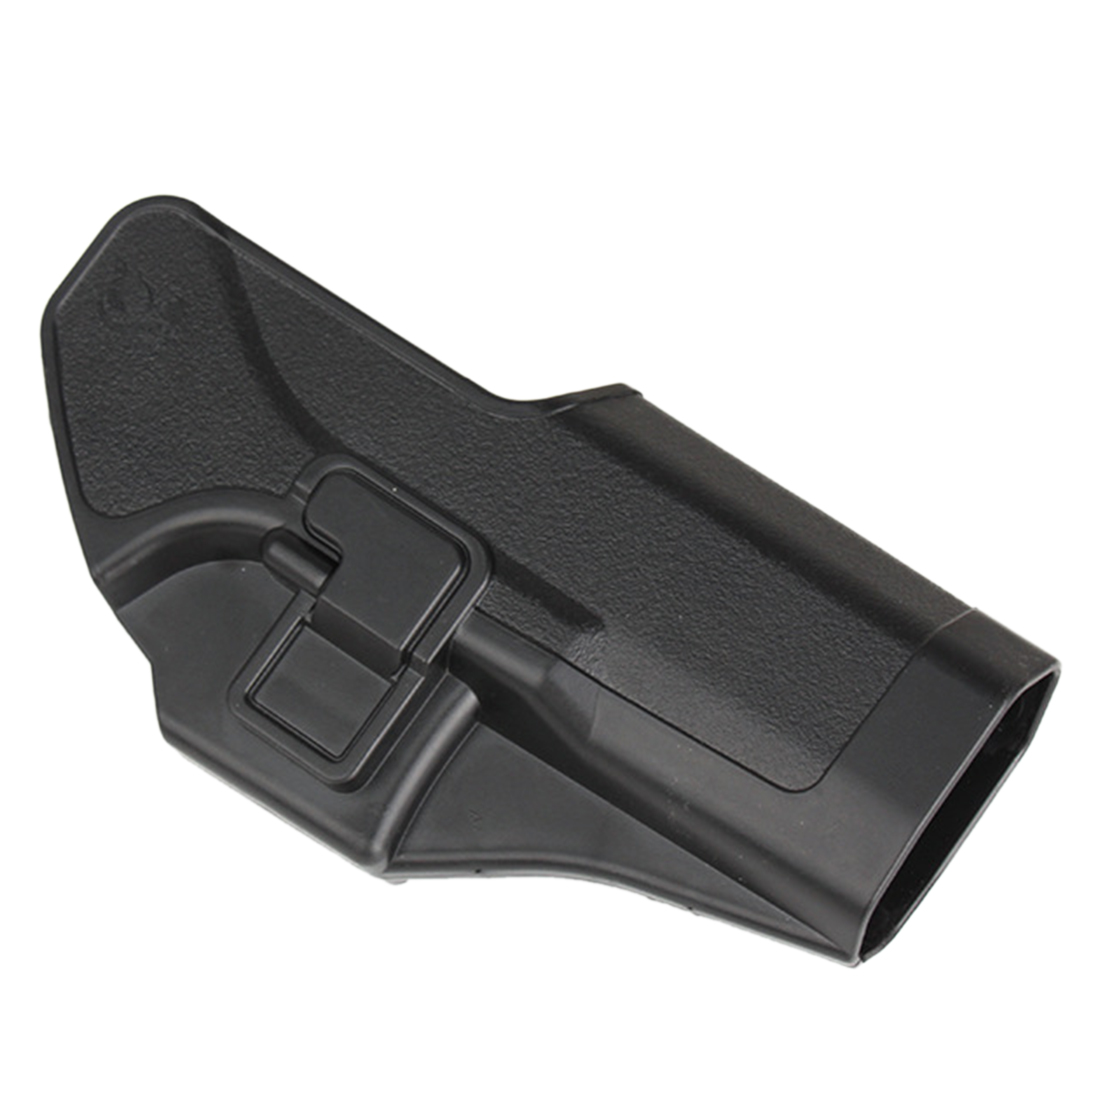 MODIKER  PA Waist Belt Holster For Glock G18/G17/G26